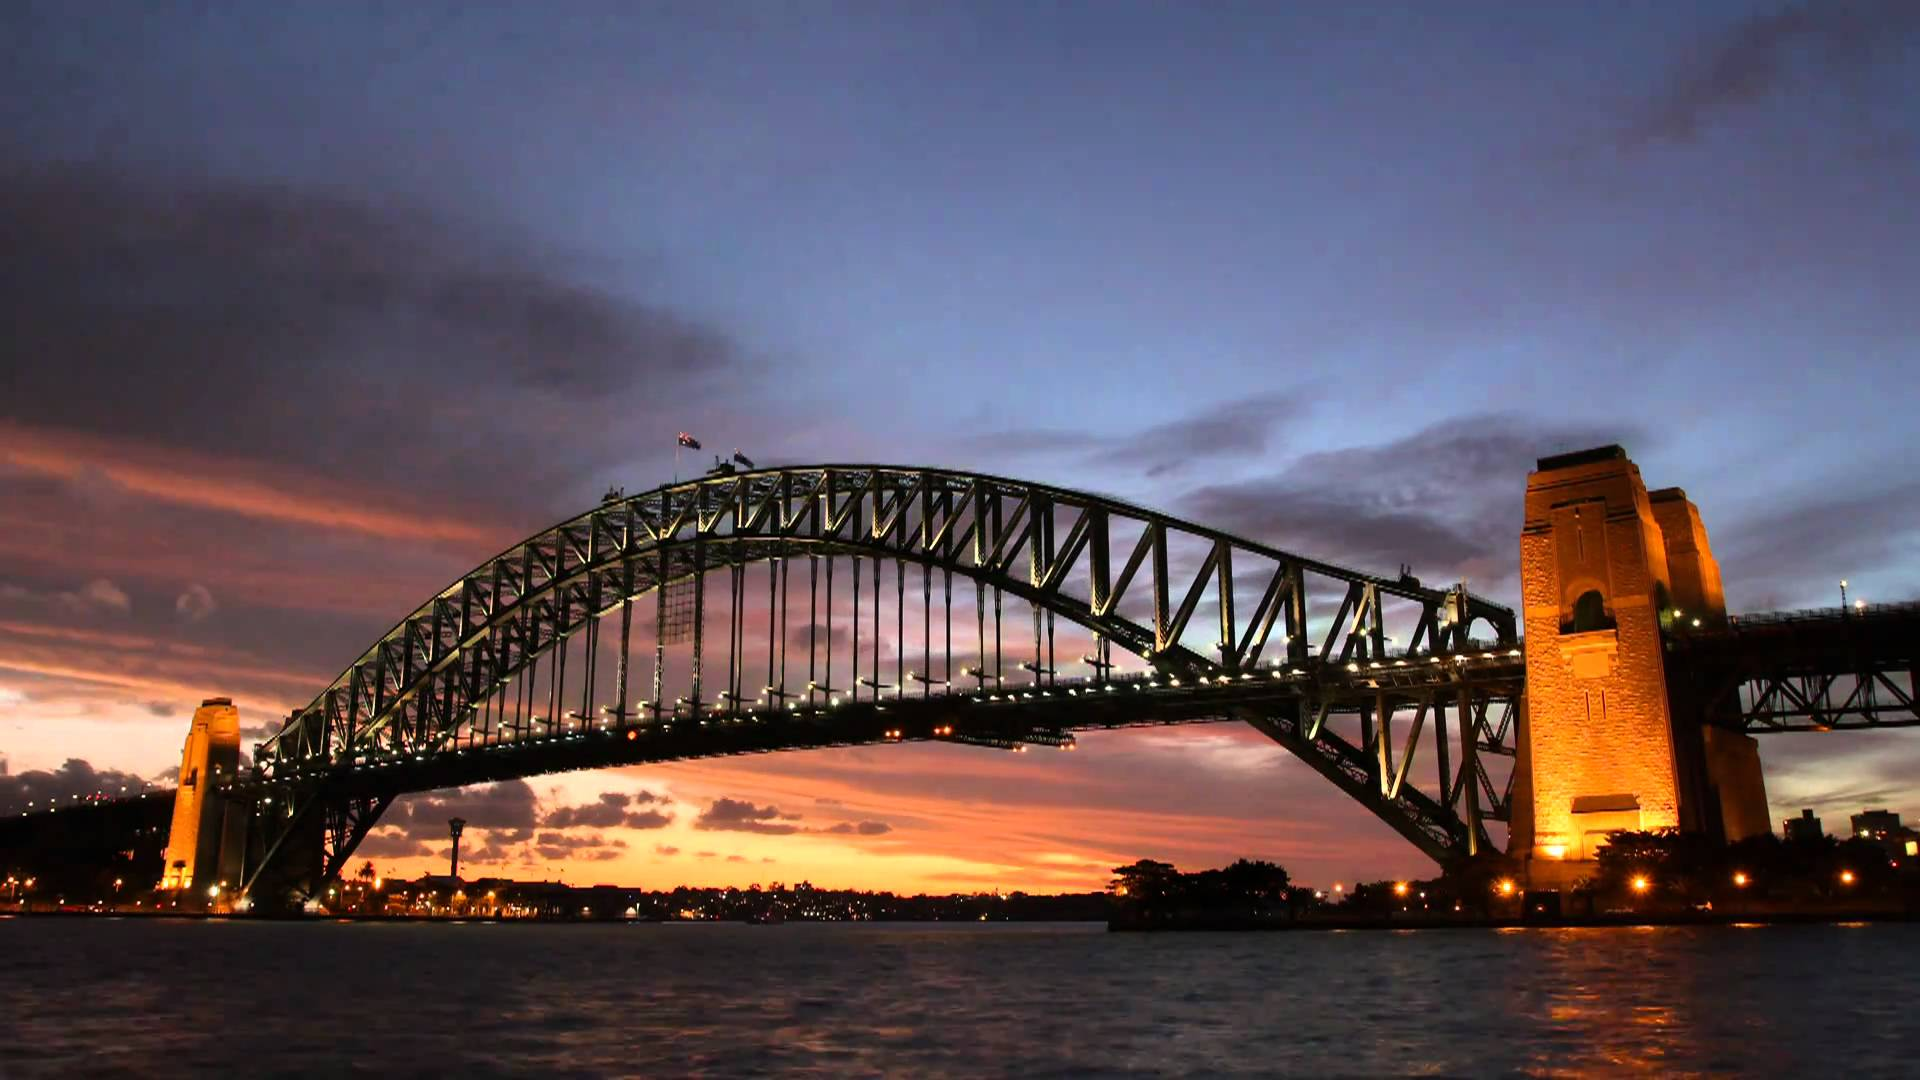 страны архитектура мост ночь река Sydney Harbour Bridge Сидней Австралия бесплатно